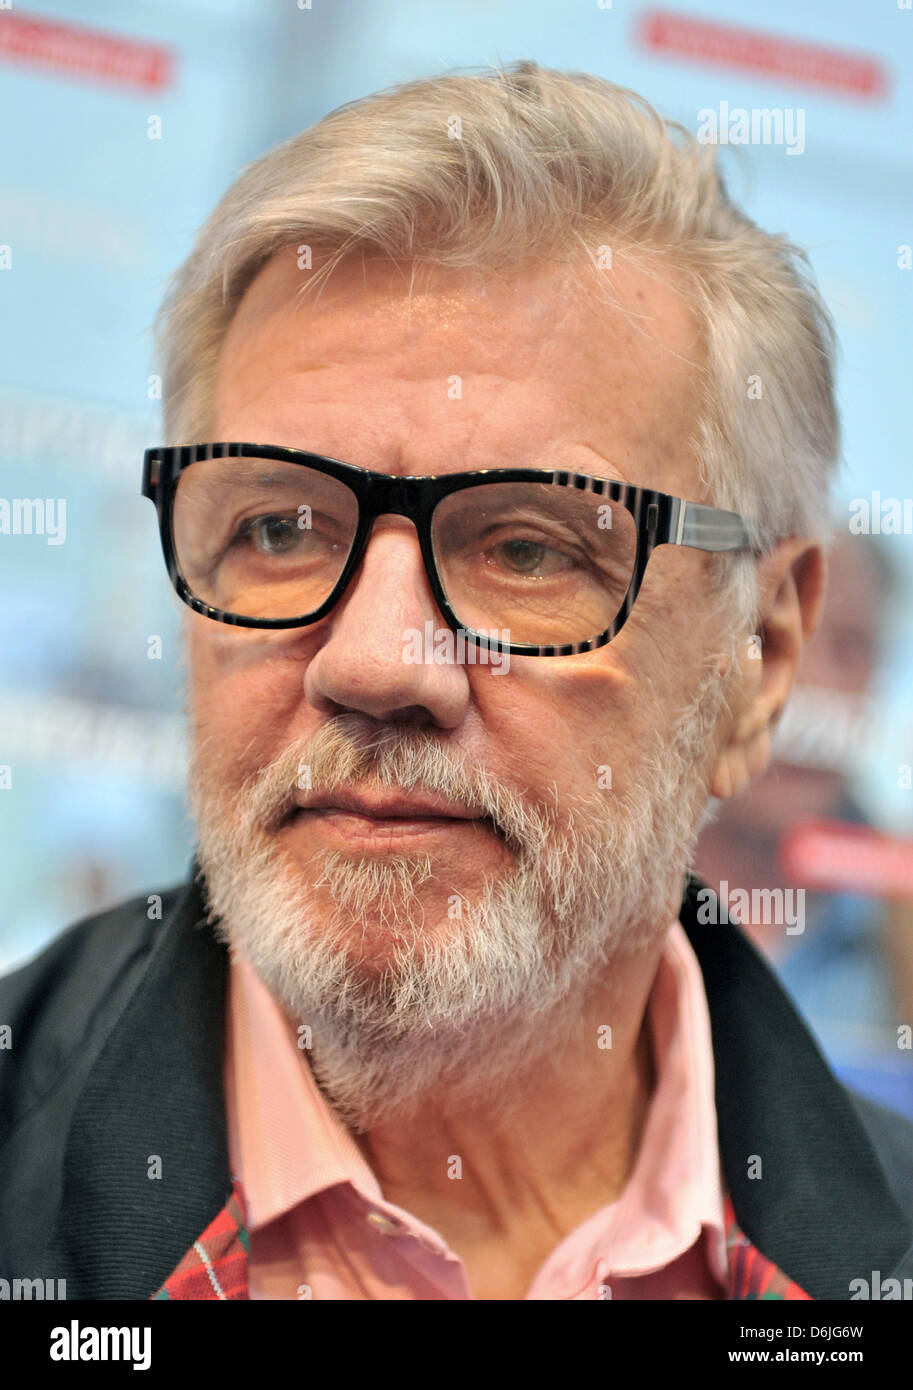 Danish actor Morten Grunwald sits in the Authors' Arena of the 'Leipziger Volkszeitung' newspaper at - Stock Image